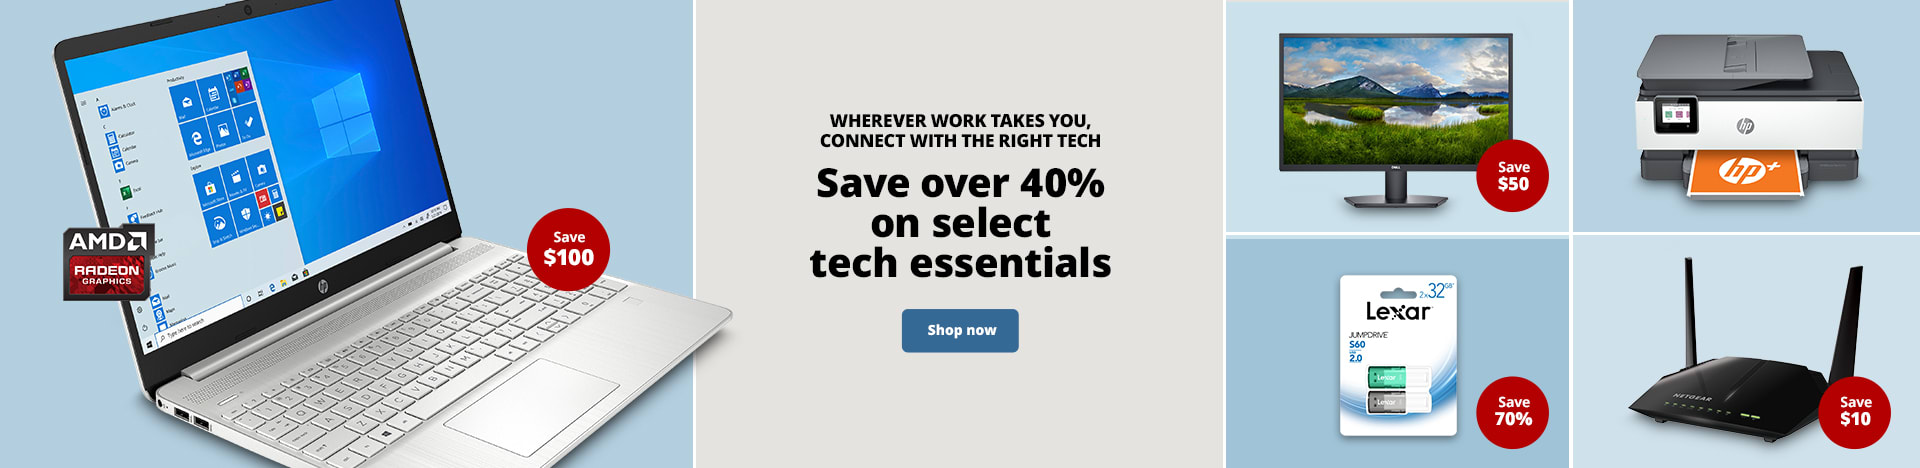 Wherever work take you, connect with the right tech. Save over 40% on select tech essentials